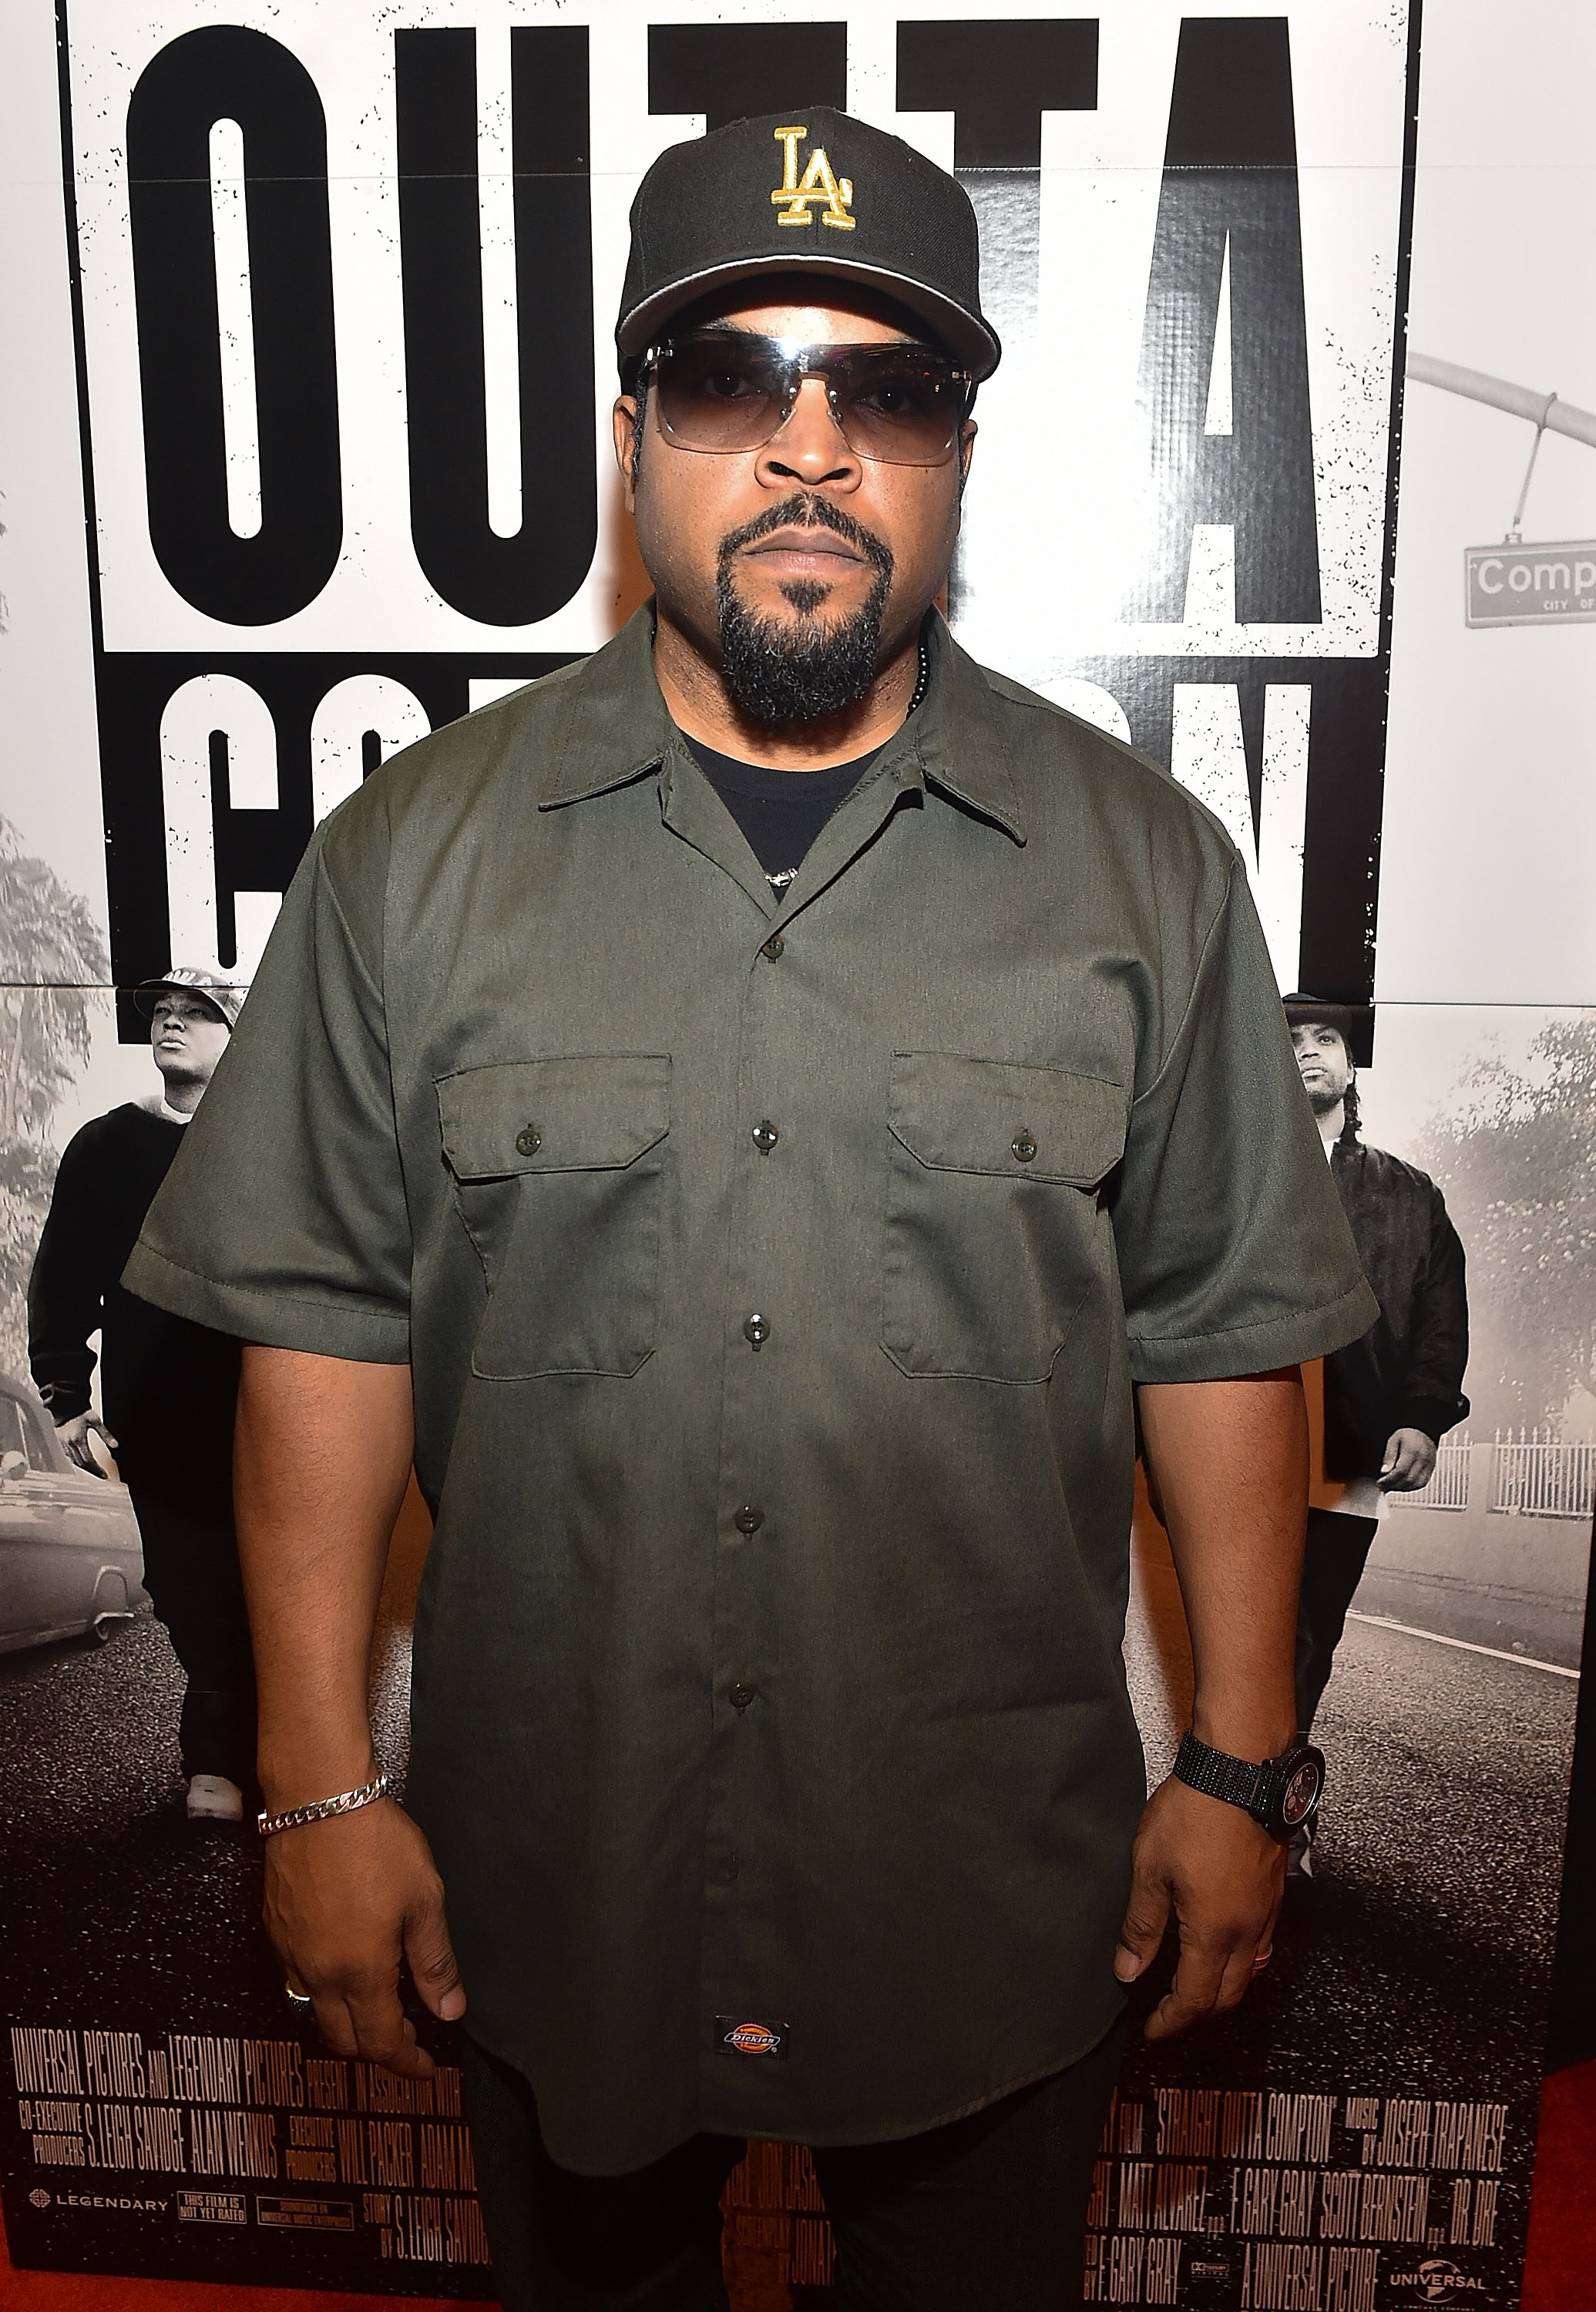 "ATLANTA, GA - JULY 24: Rapper/actor Ice Cube attends ""Straight Outta Compton"" VIP Screening With Director/ Producer F. Gary Gray, Producer Ice Cube, Executive Producer Will Packer, And Cast Members at Regal Atlantic Station on July 24, 2015 in Atlanta, Georgia. (Photo by Paras Griffin/Getty Images for Universal Pictures)"